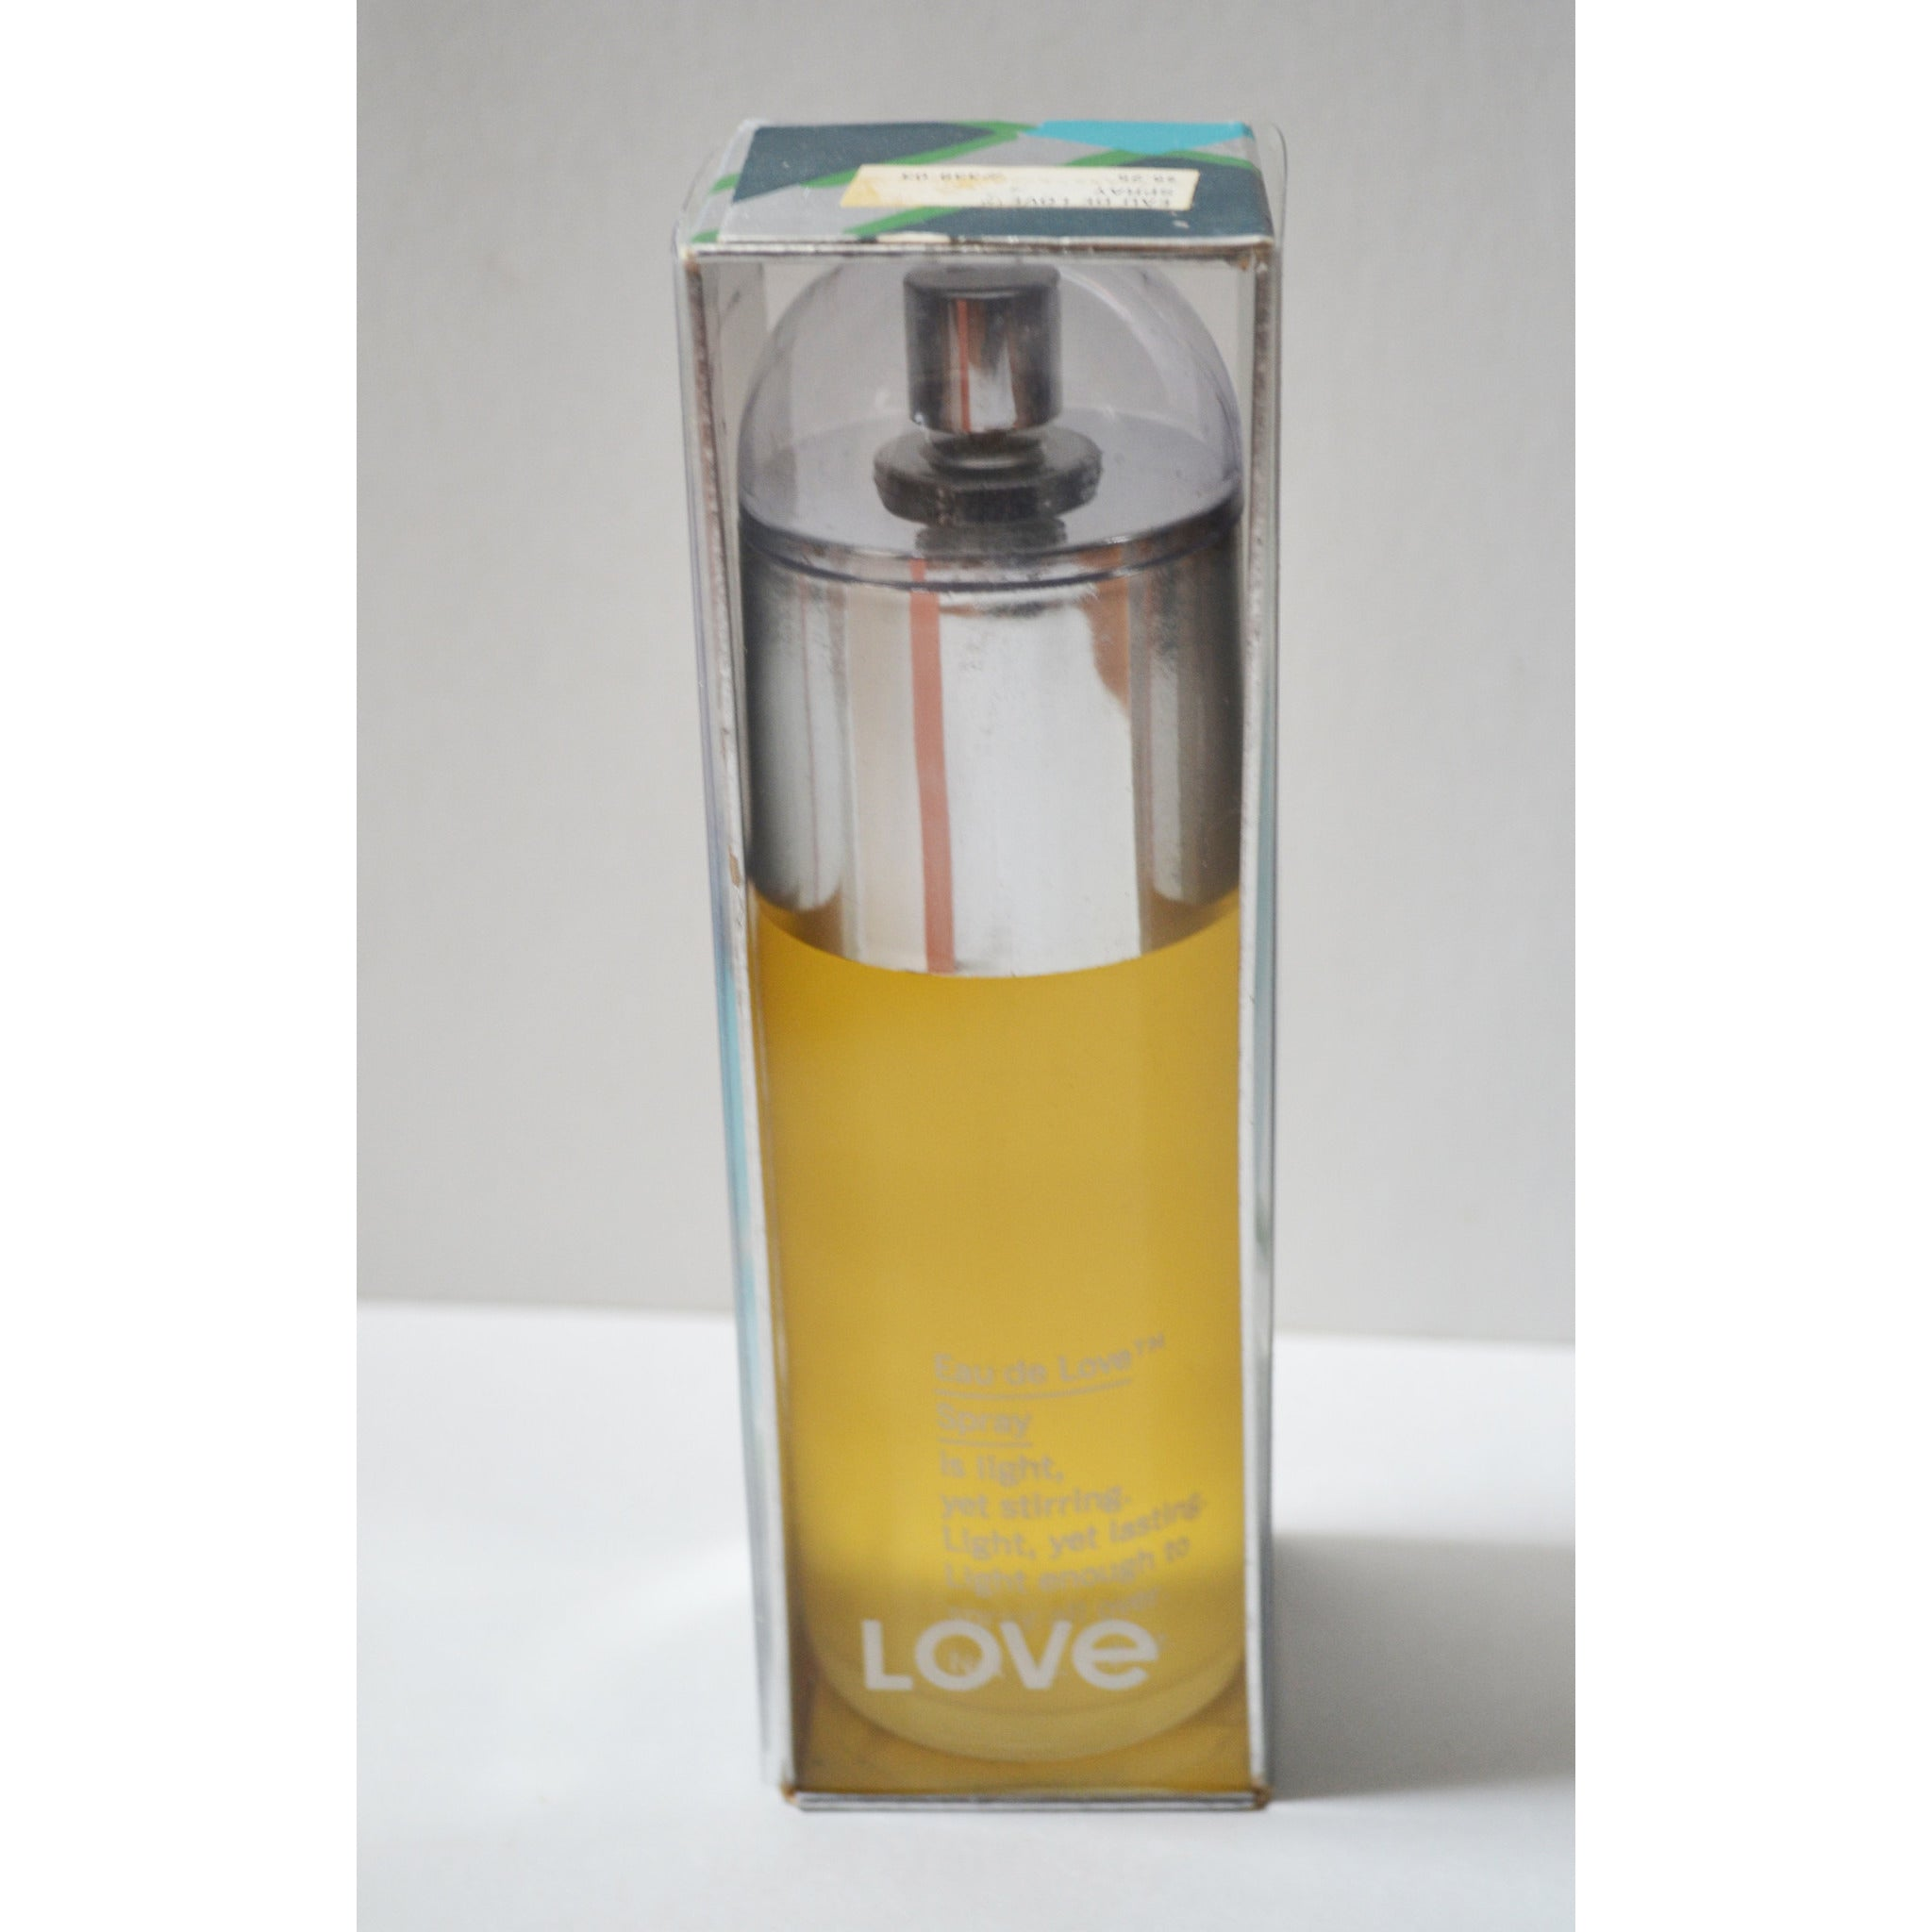 Vintage Eau De Love By Menley & James